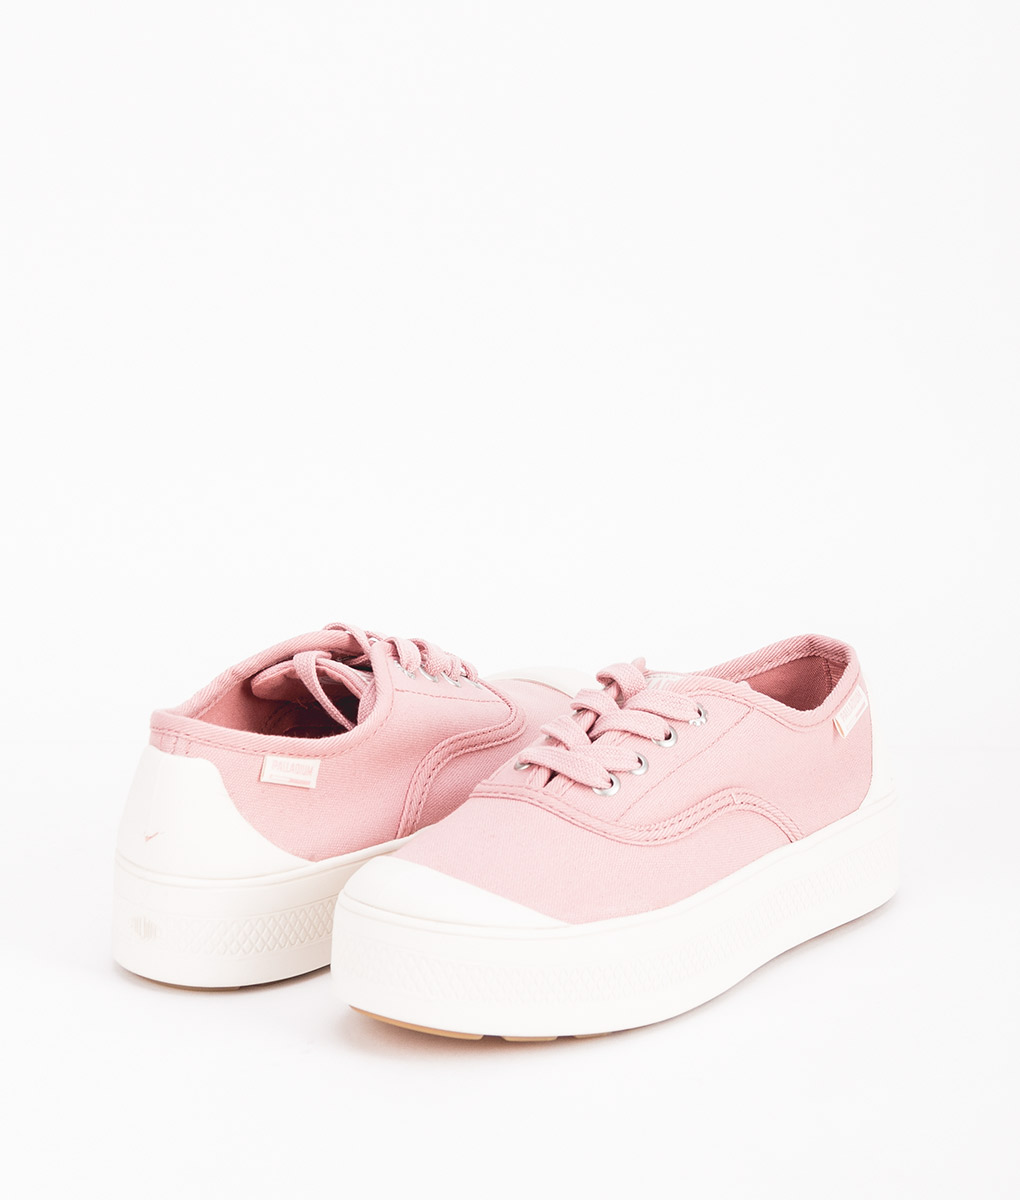 PALLADIUM Women Sneakers 95768 SUB LOW CVS, Rose Tan Marshellow 74.99